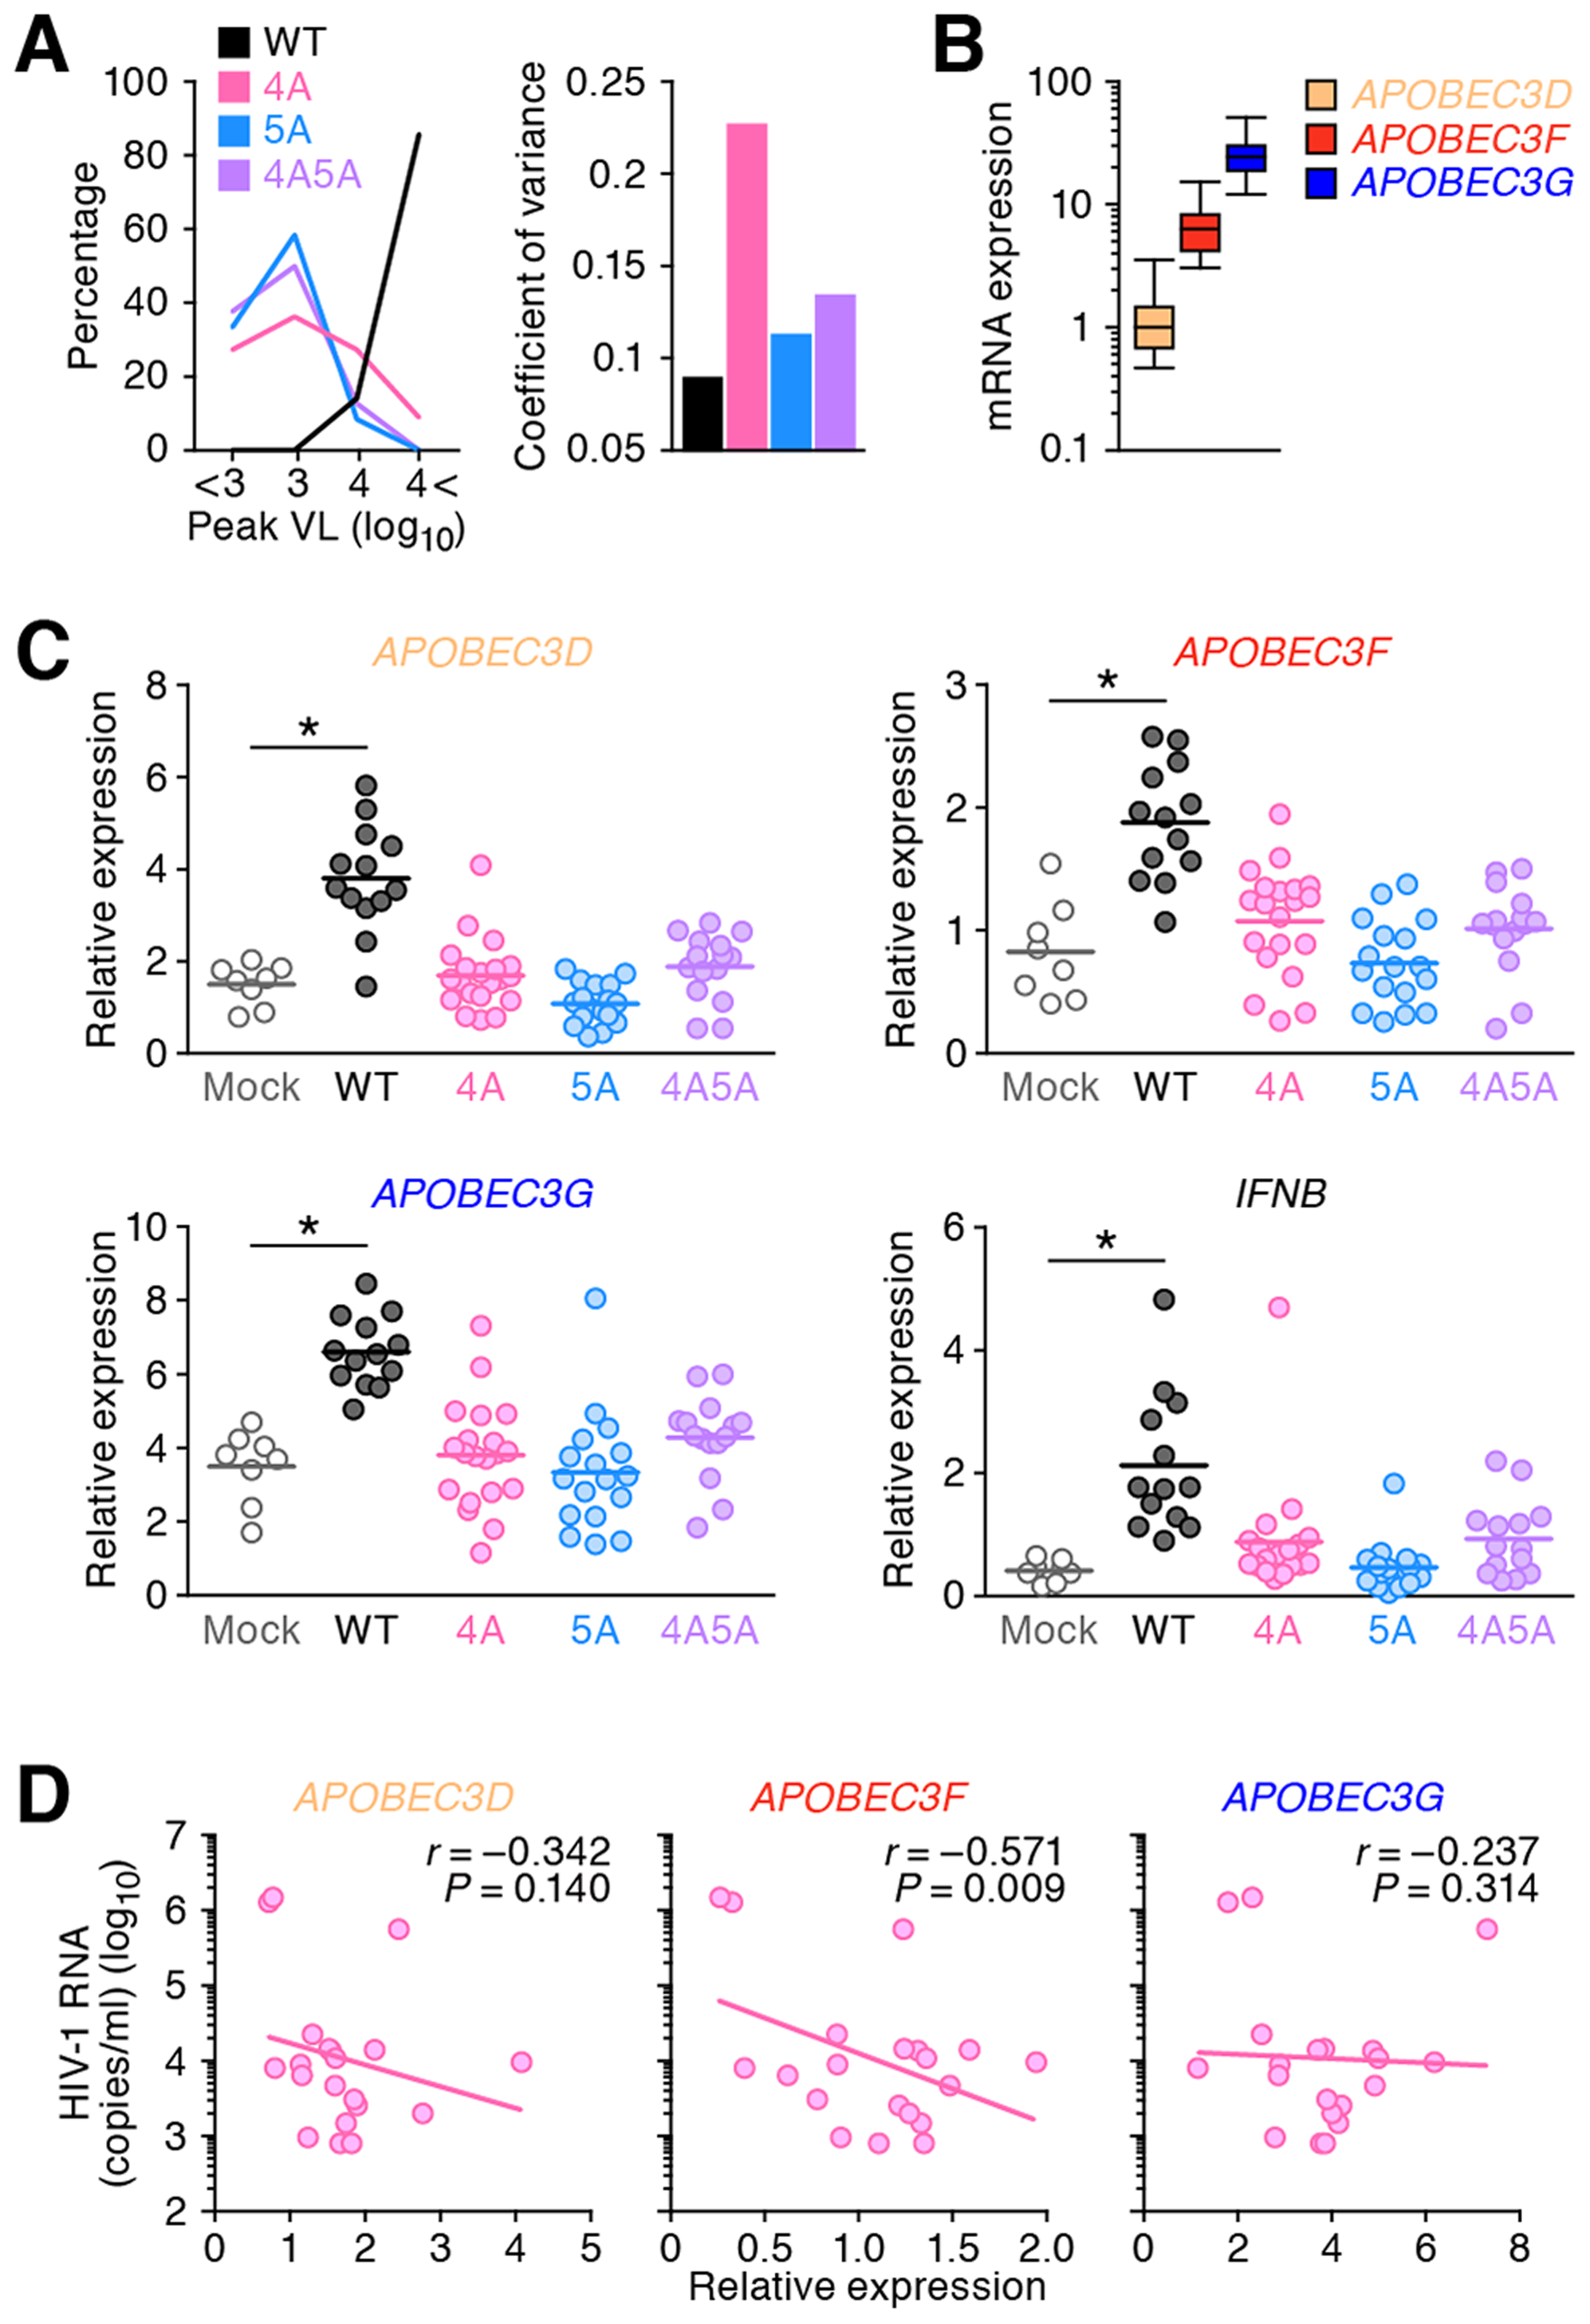 Expression levels of <i>APOBEC3</i> and <i>IFNB</i> in infected humanized mice.